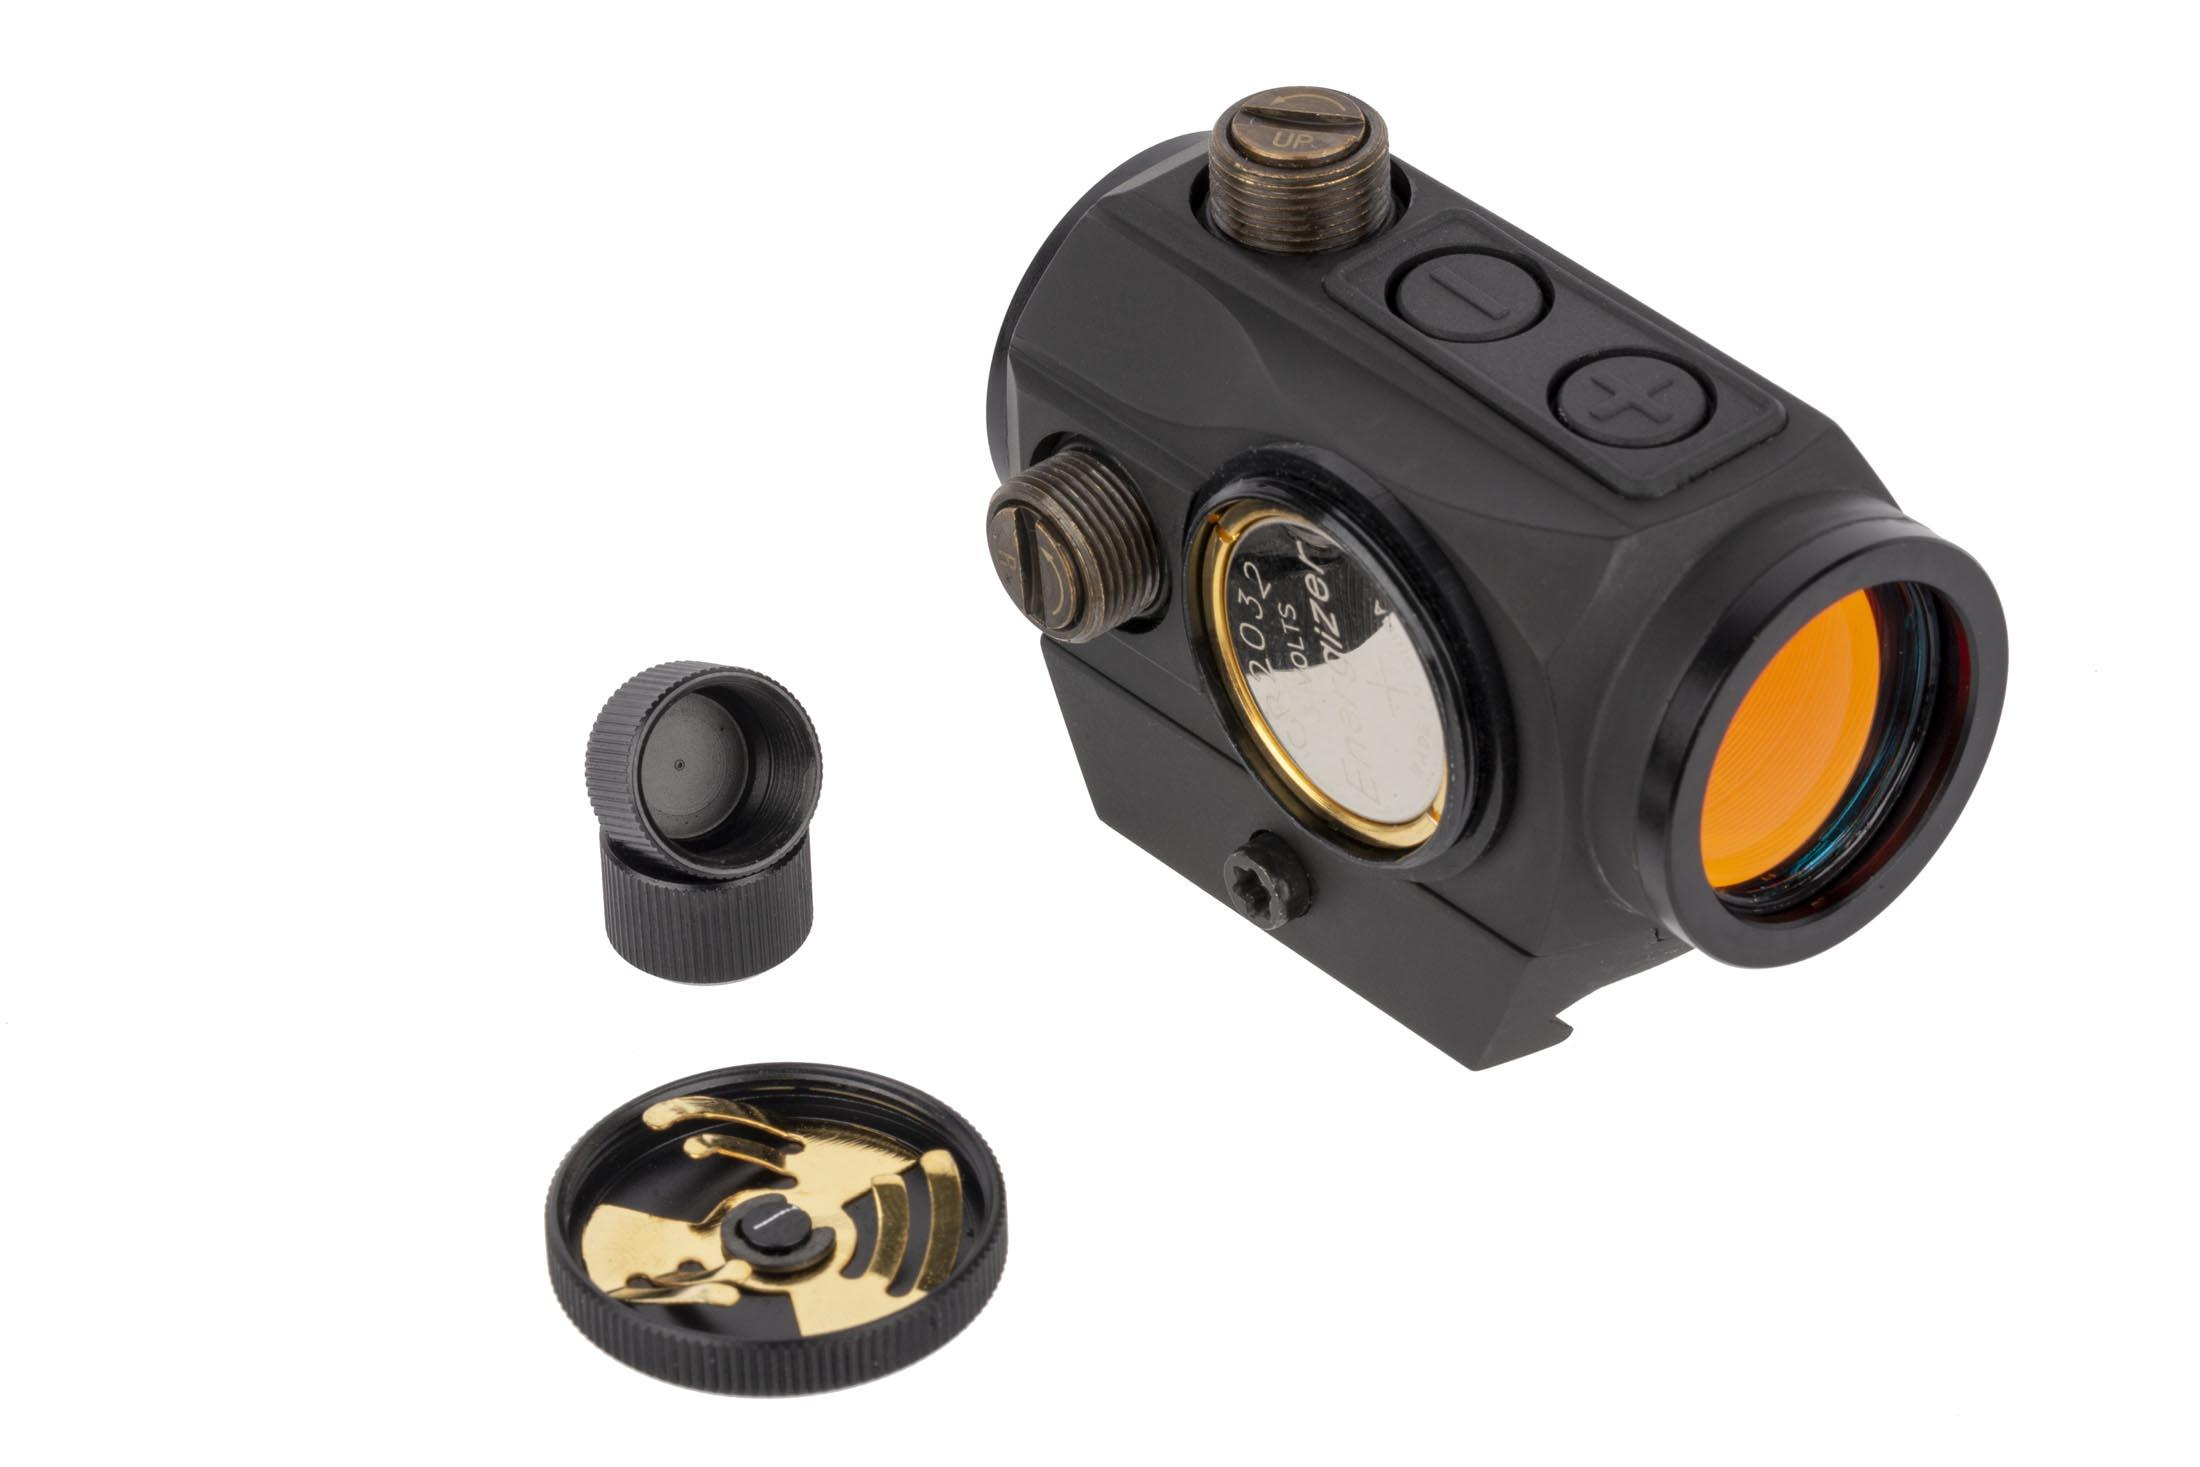 Primary Arms Advanced micro red dot scope features capped turrets with 1/2 MOA and accepts standard CR2032 batteries